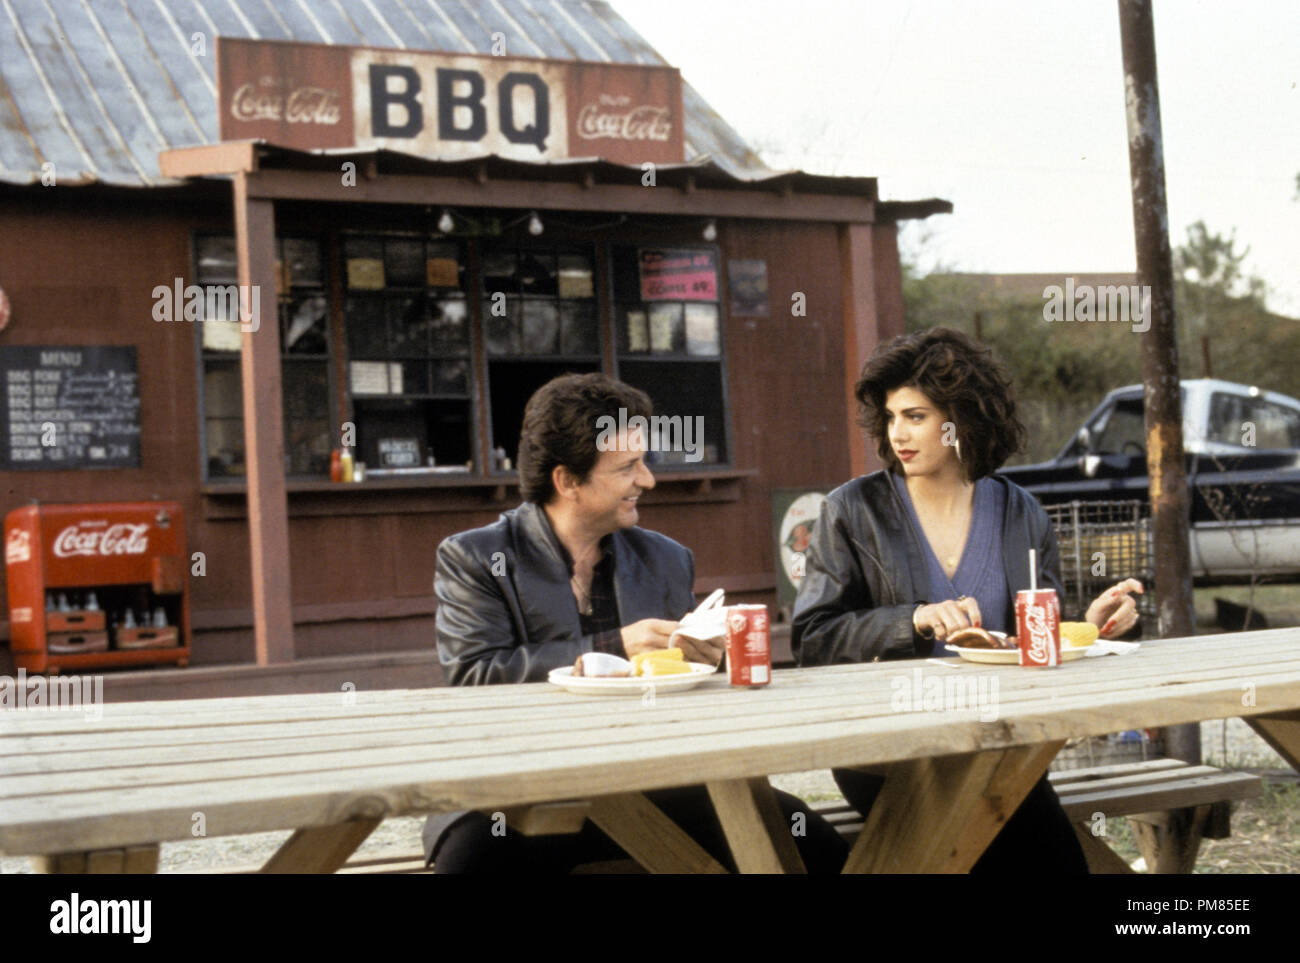 Film still or Publicity still from 'My Cousin Vinny' Joe Pesci, Marisa Tomei © 1992 20th Century Fox Photo Credit: Ben Glass All Rights Reserved   File Reference # 31487_161THA  For Editorial Use Only - Stock Image